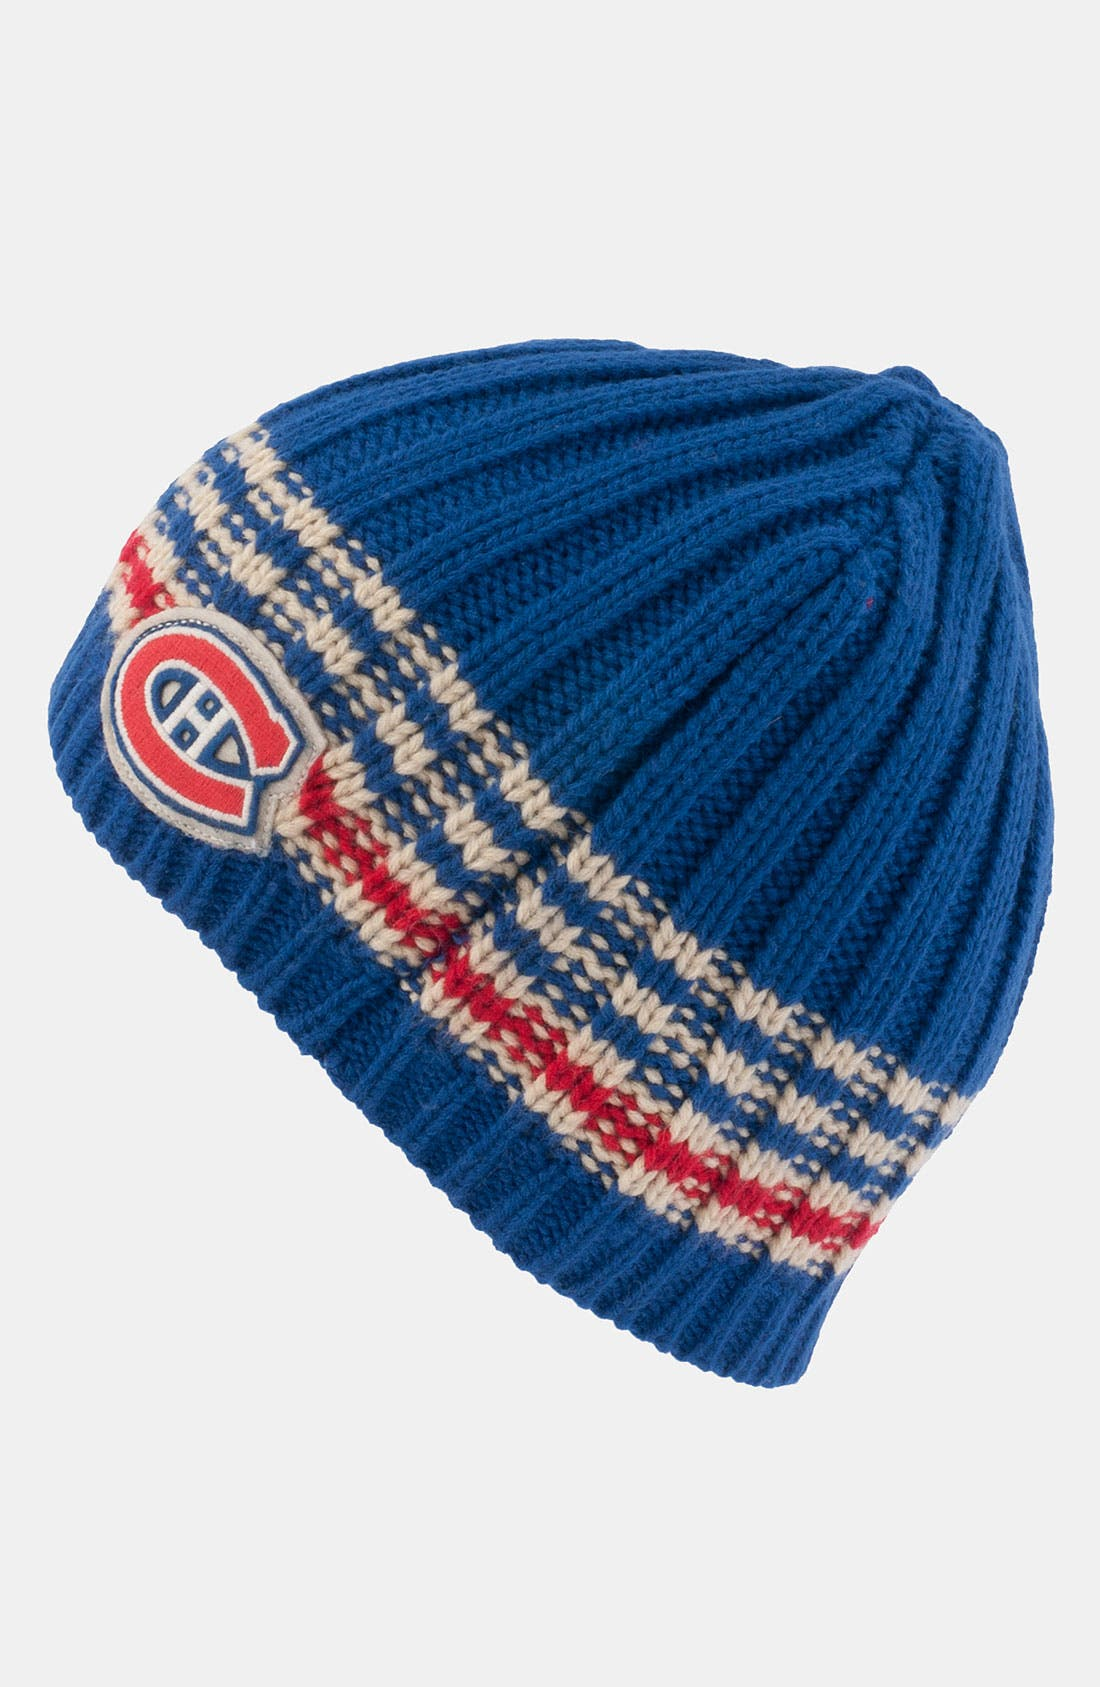 Alternate Image 1 Selected - American Needle 'Montreal Canadiens - Targhee' Knit Hat